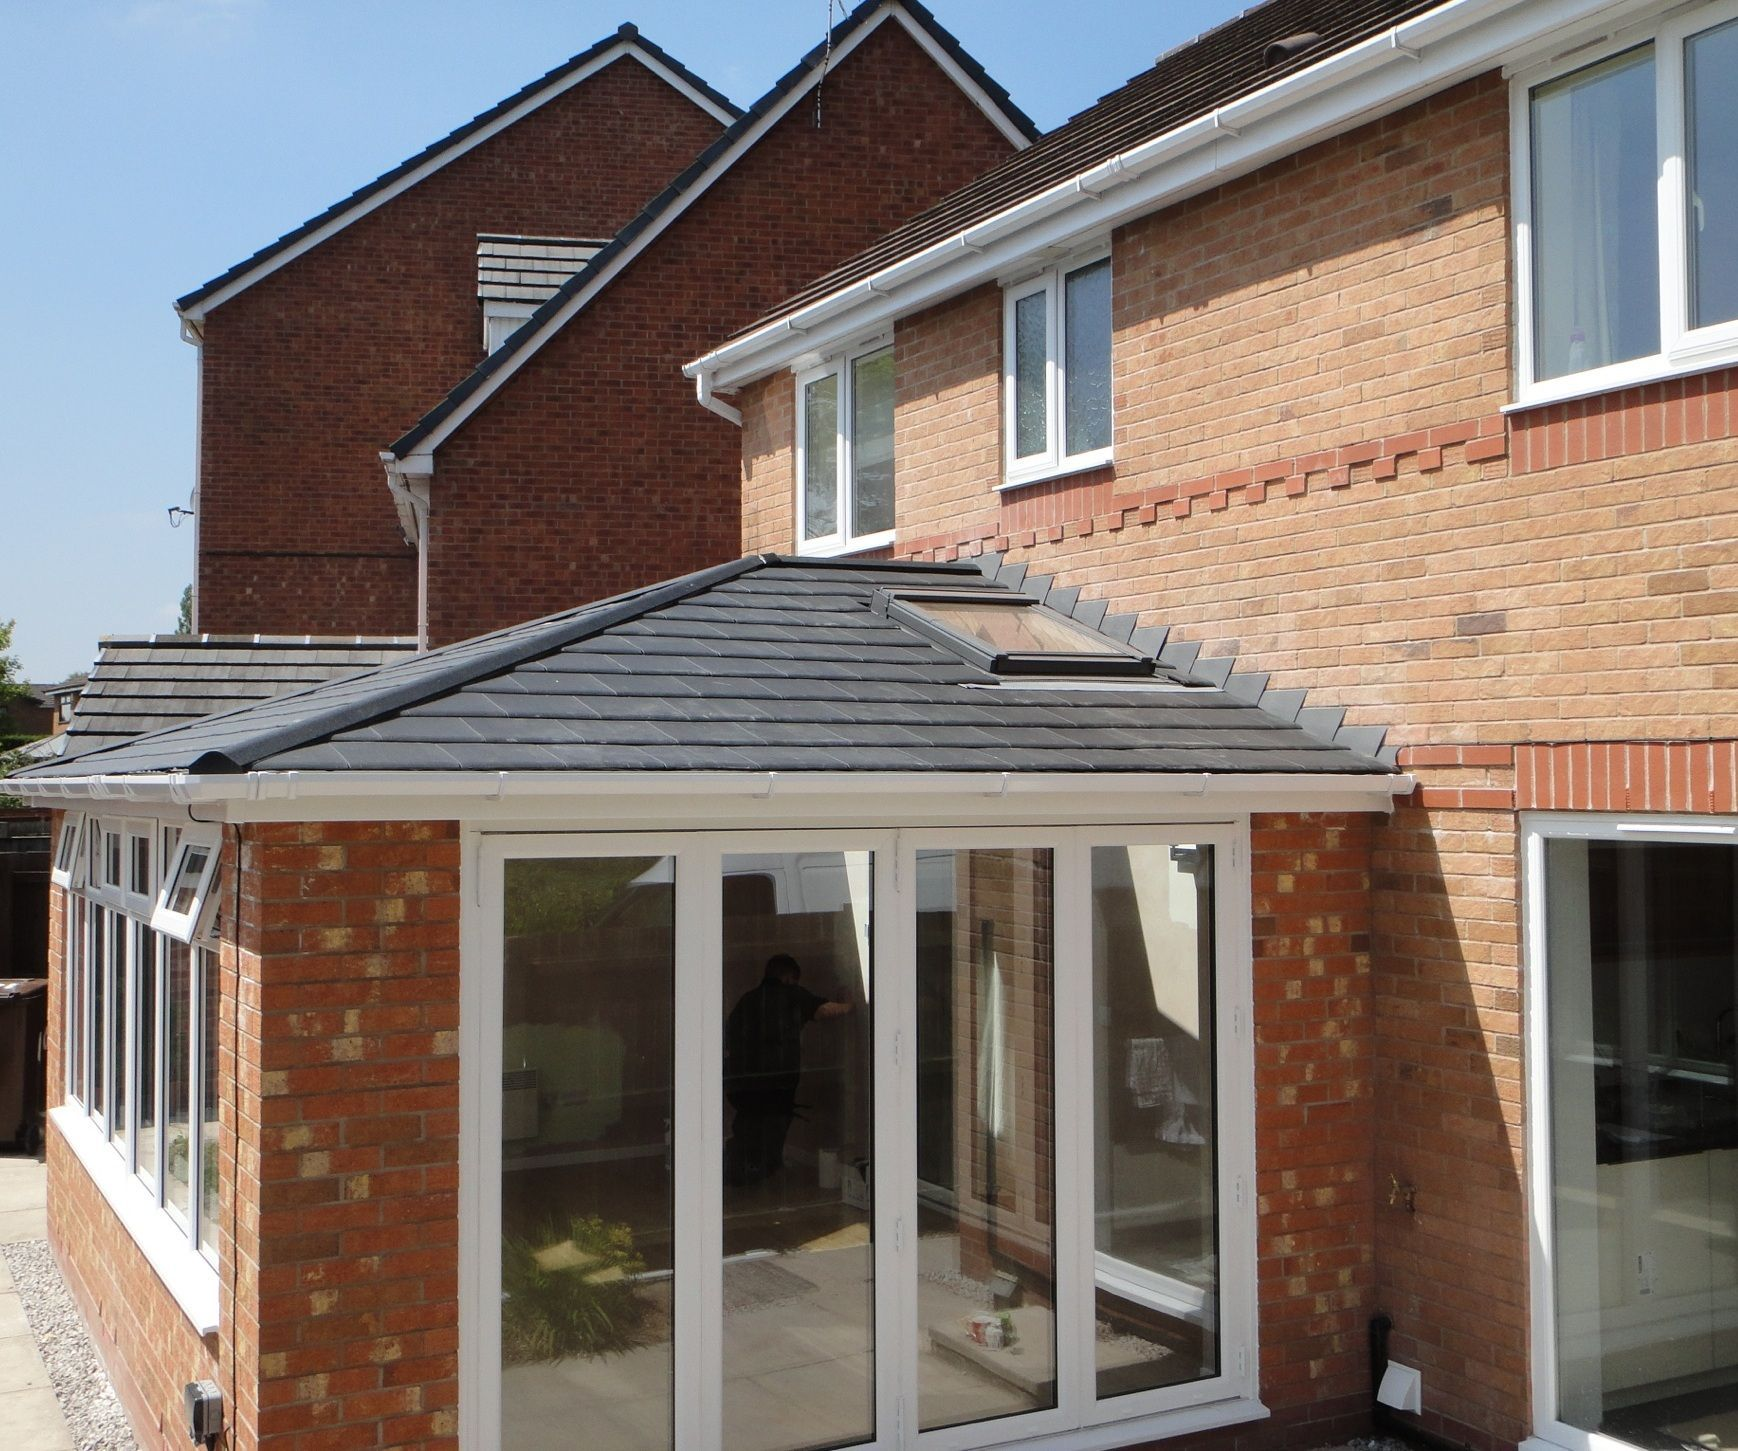 Its Grow Old To Replace That Scrappy Obsolete Roof Are You Wondering How Much It Will Cost To Instal Conservatory Roof Garden Room Extensions House Extensions